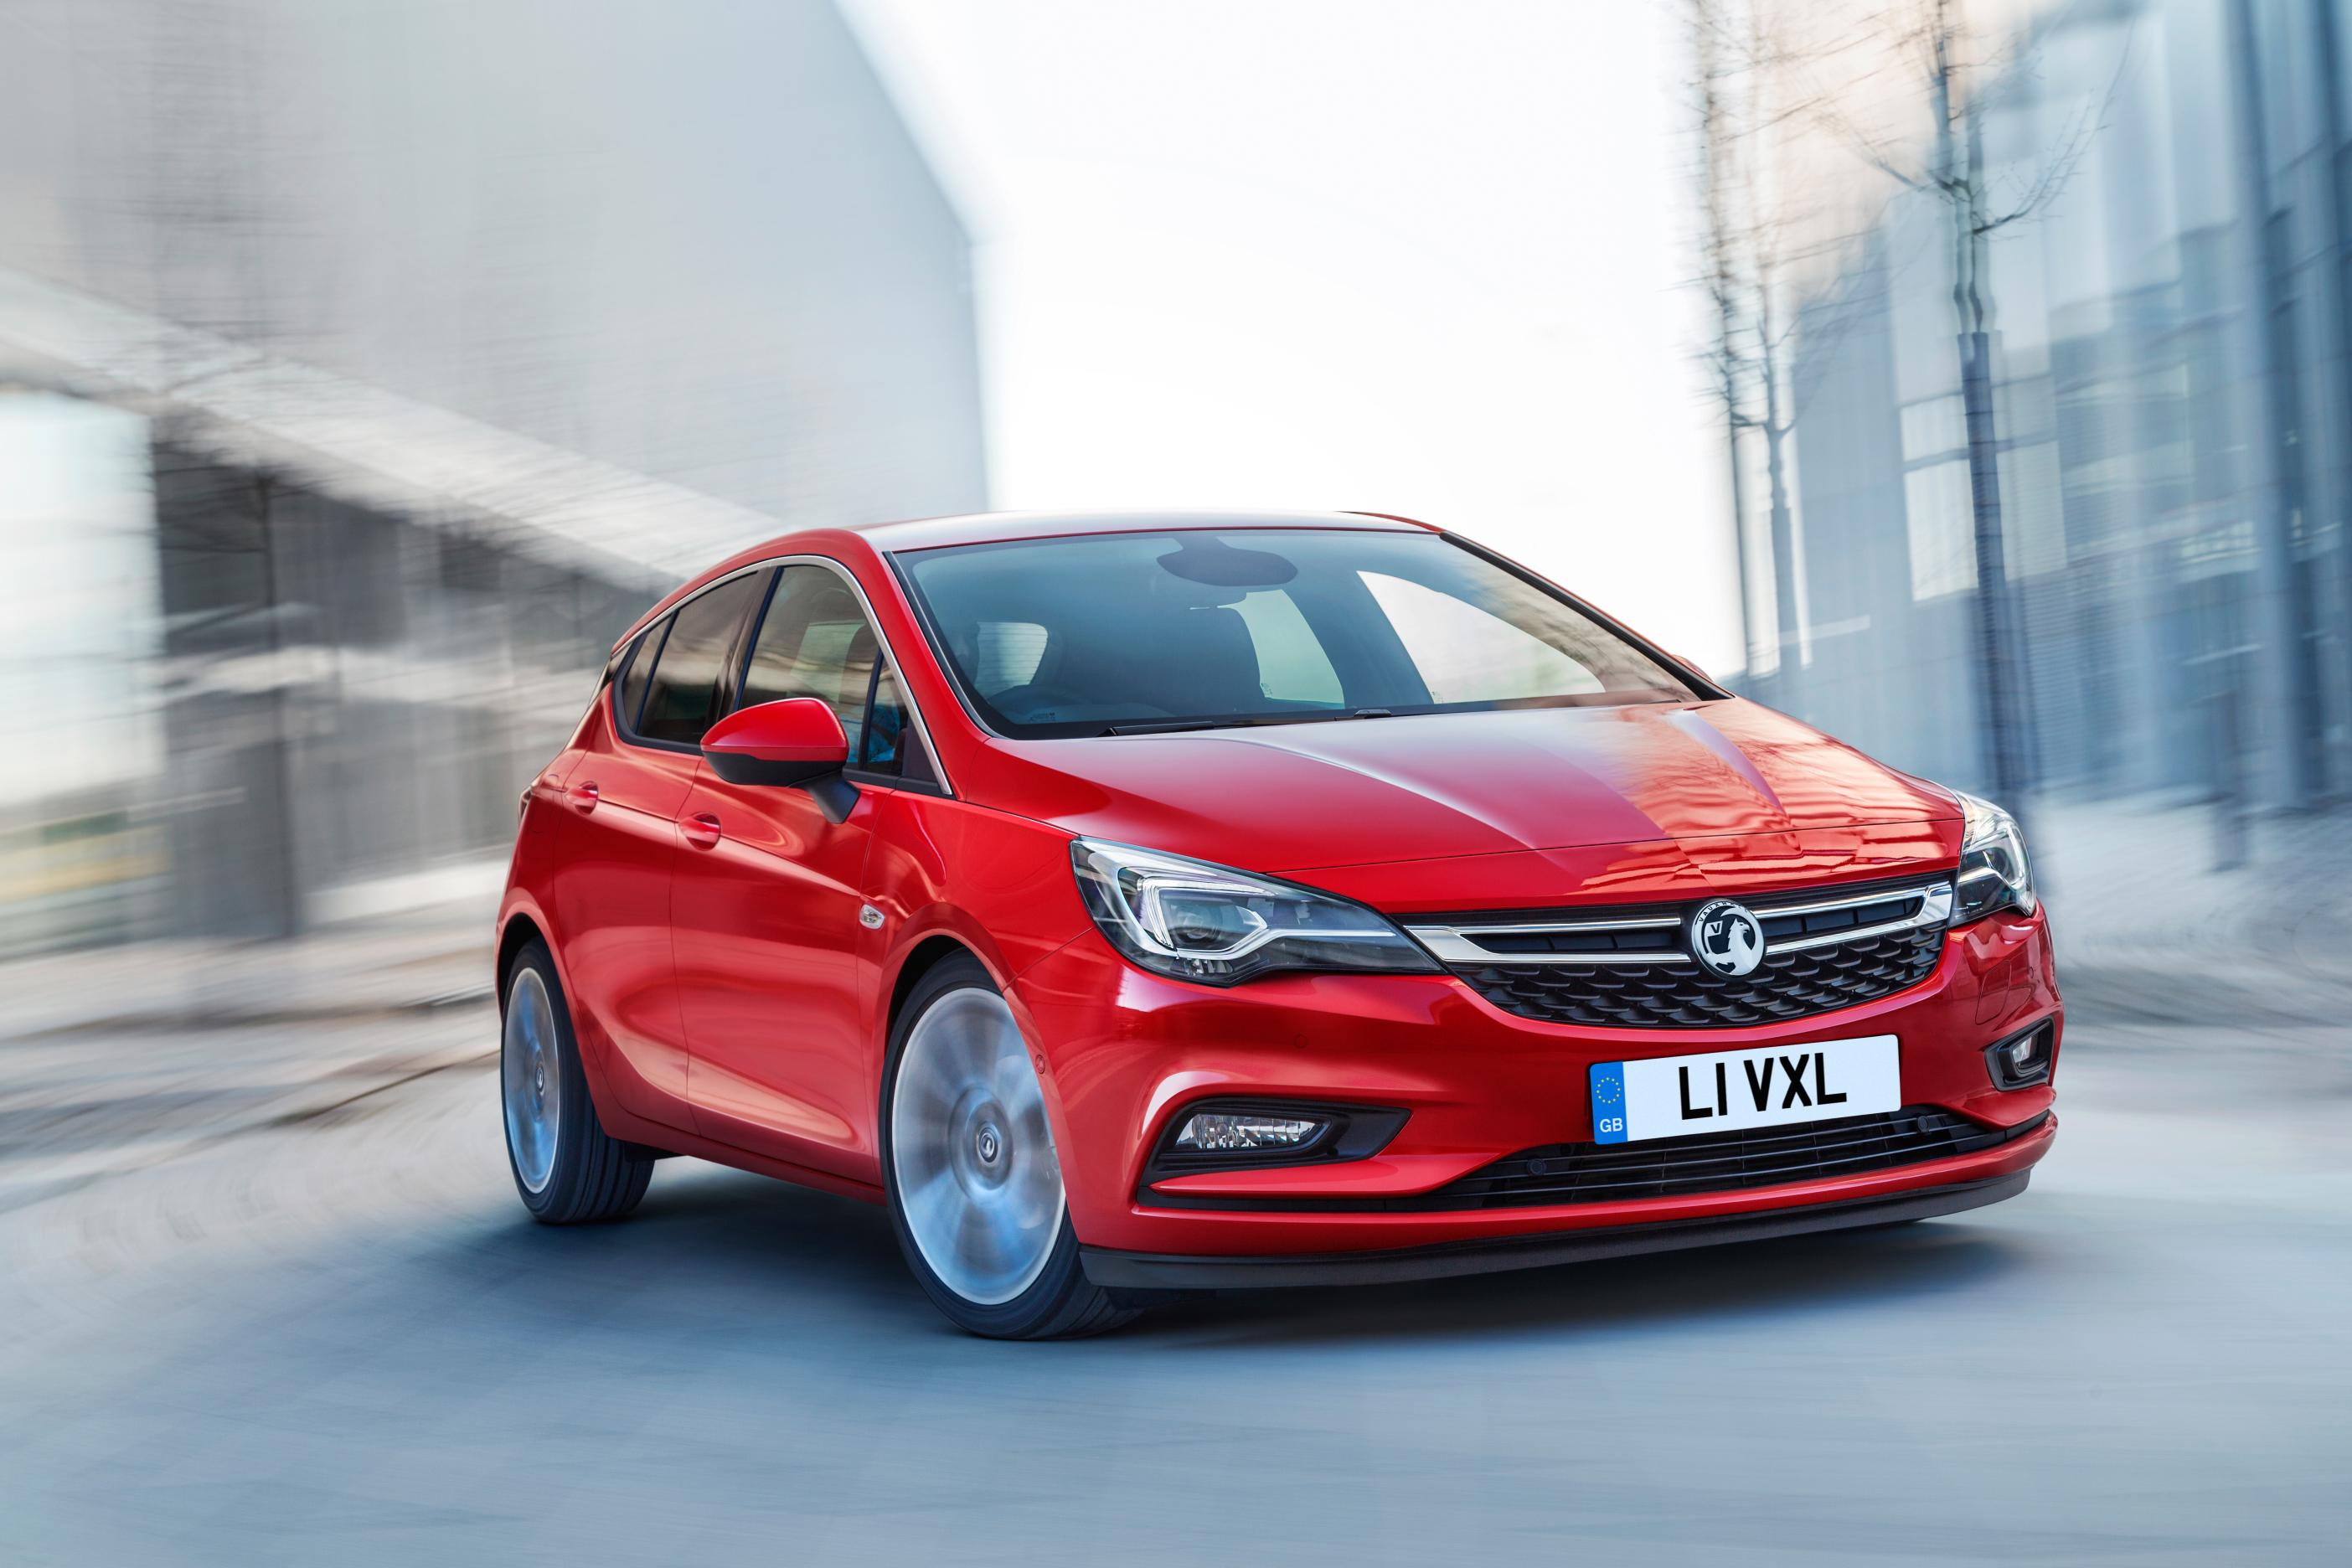 Audi Service Prices >> 2015 Opel Astra K is Here to Stay - autoevolution